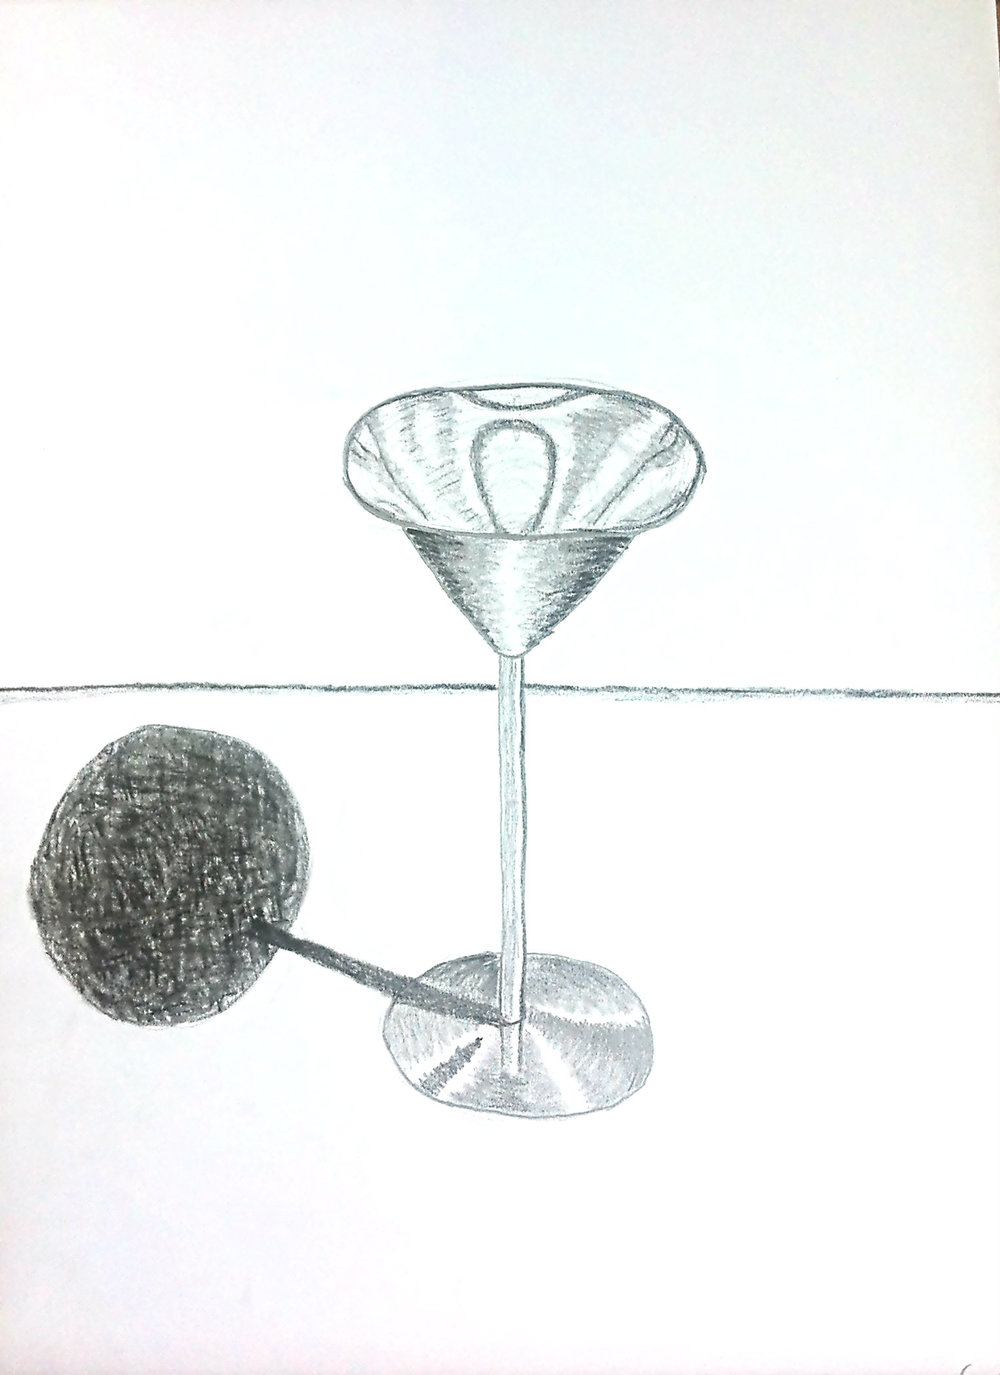 Metal goblet by 12 year old student